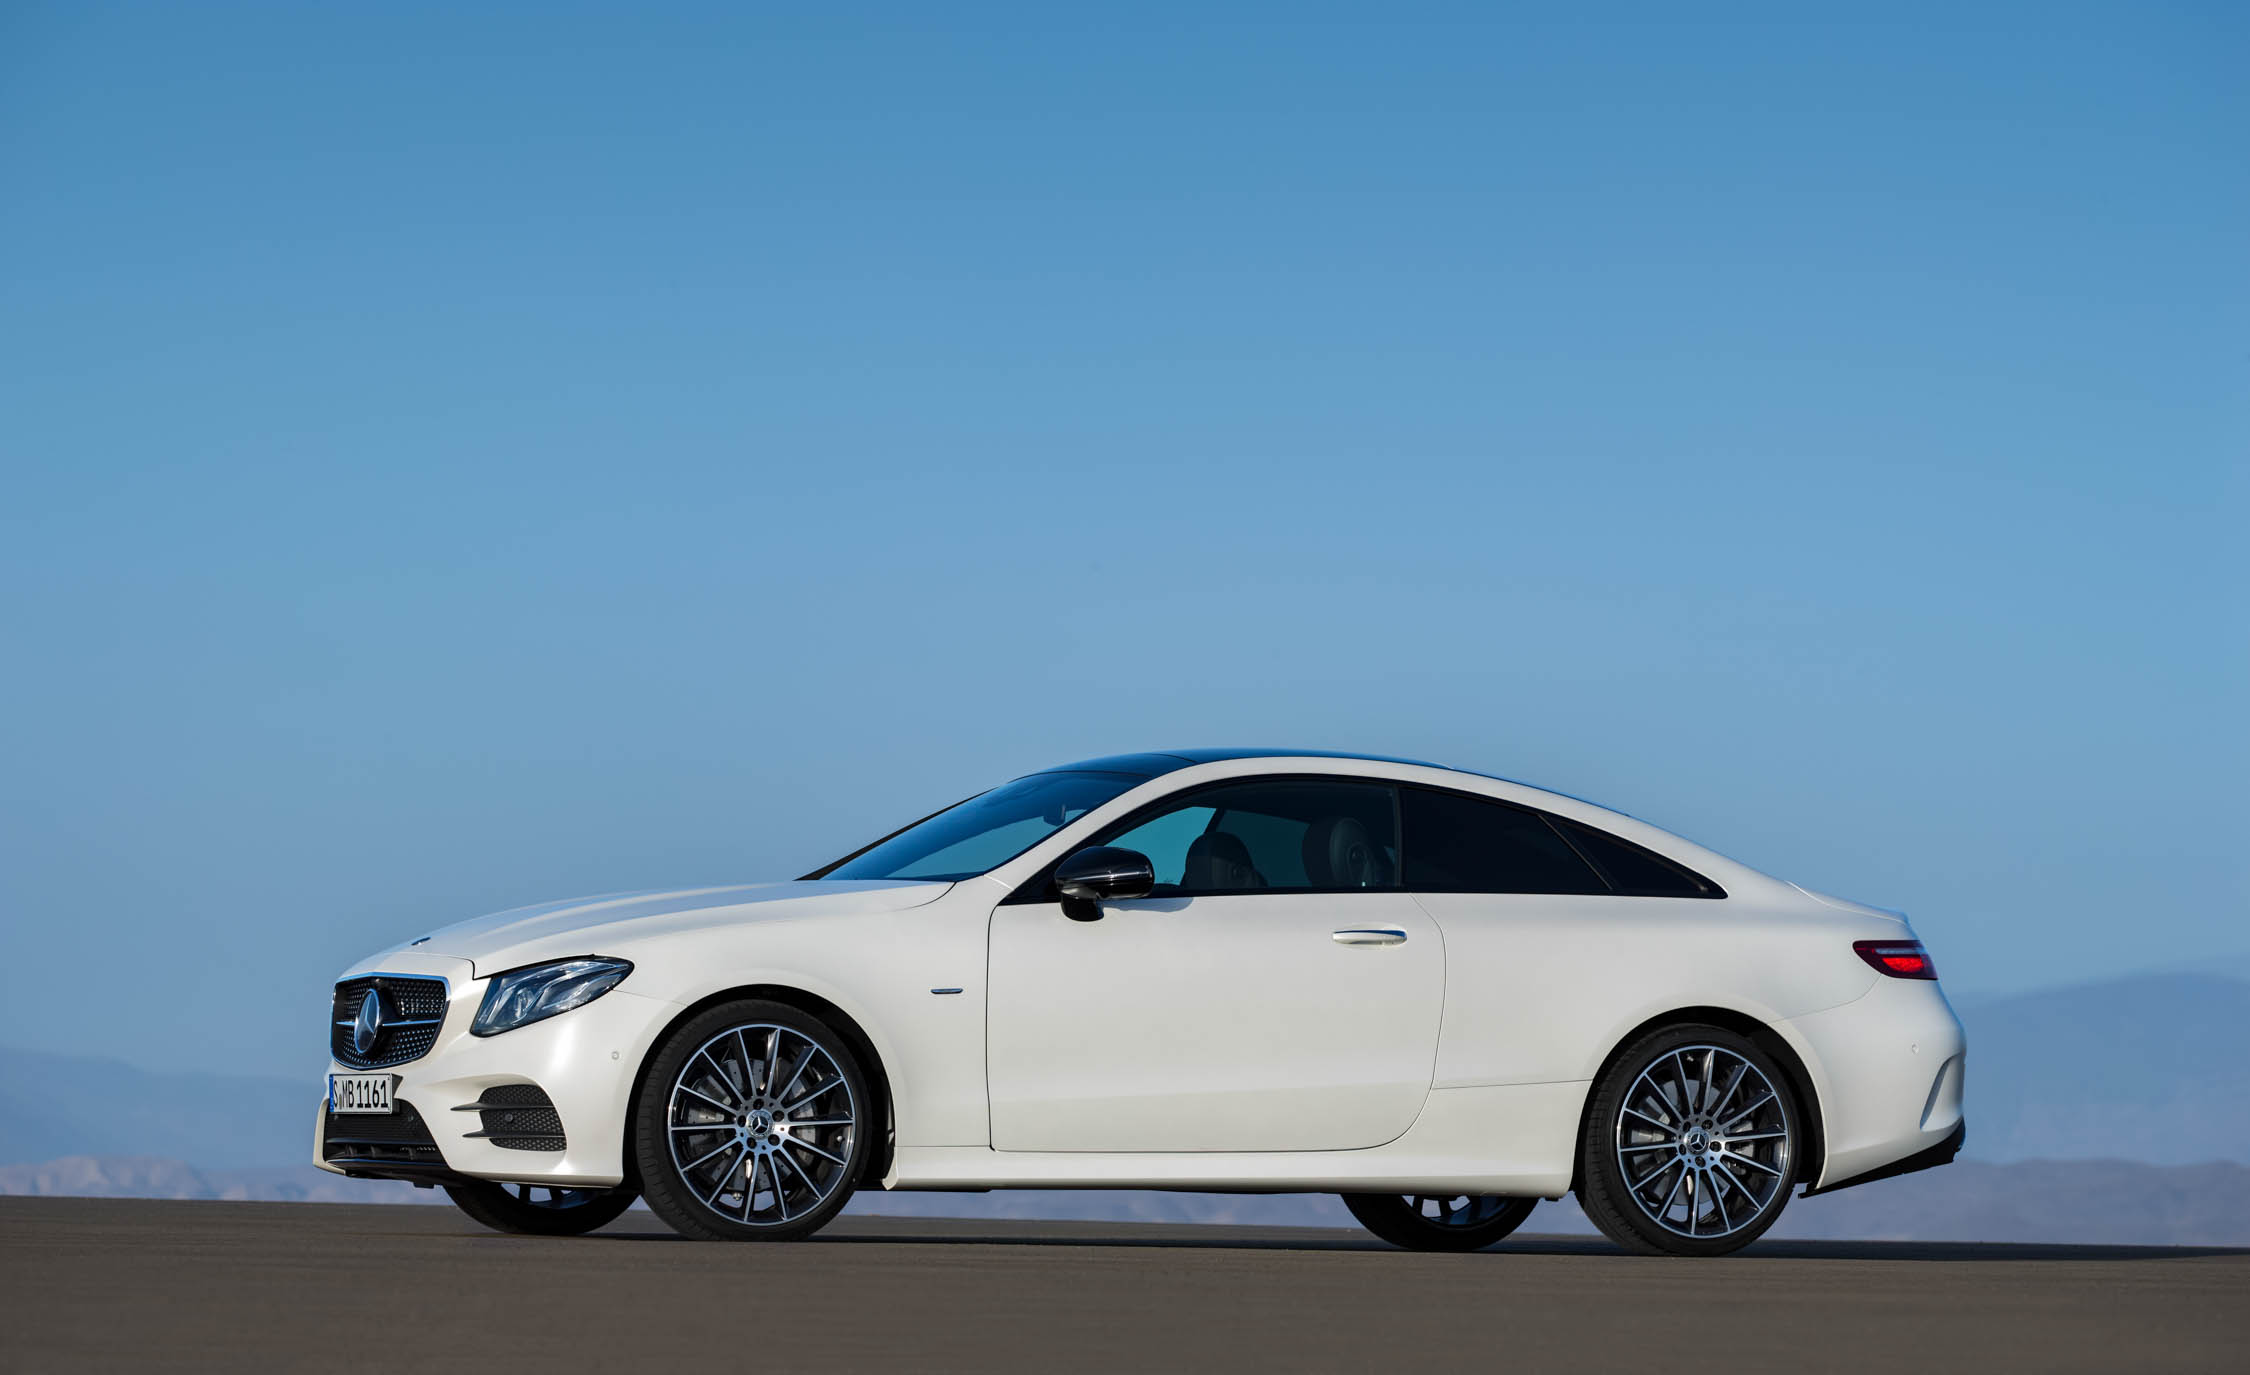 2018 Mercedes Benz E400 Coupe (Photo 55 of 60)